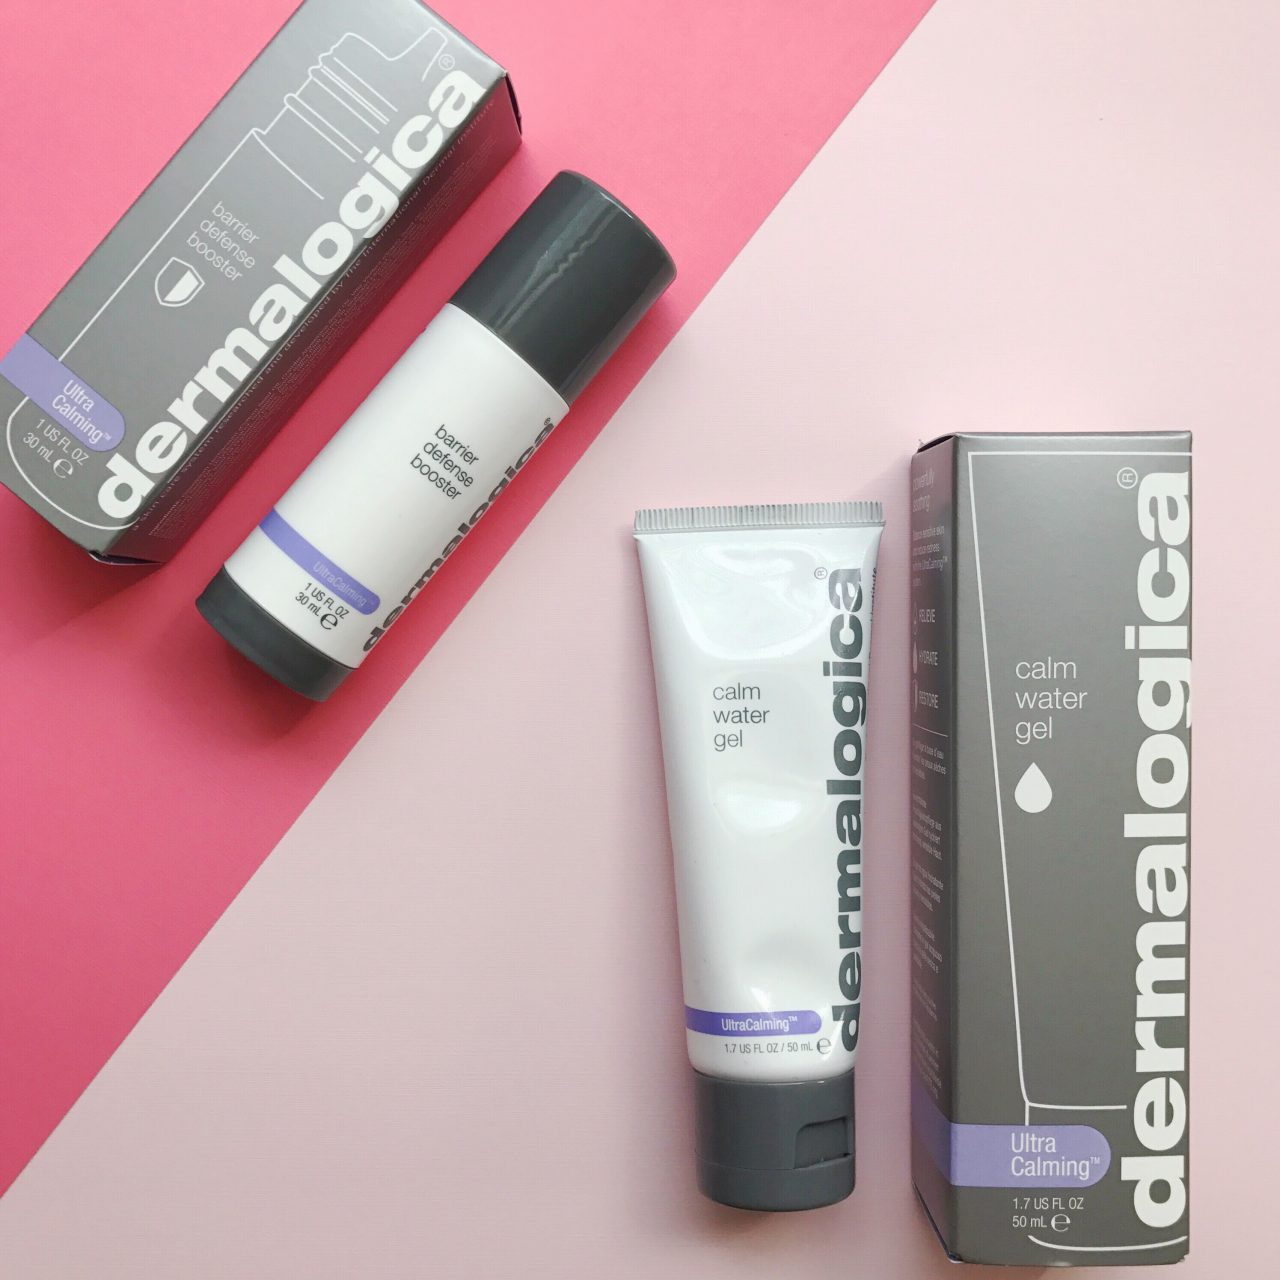 Keira Lennox Review Dermalogica Ultra Calming Skin Care